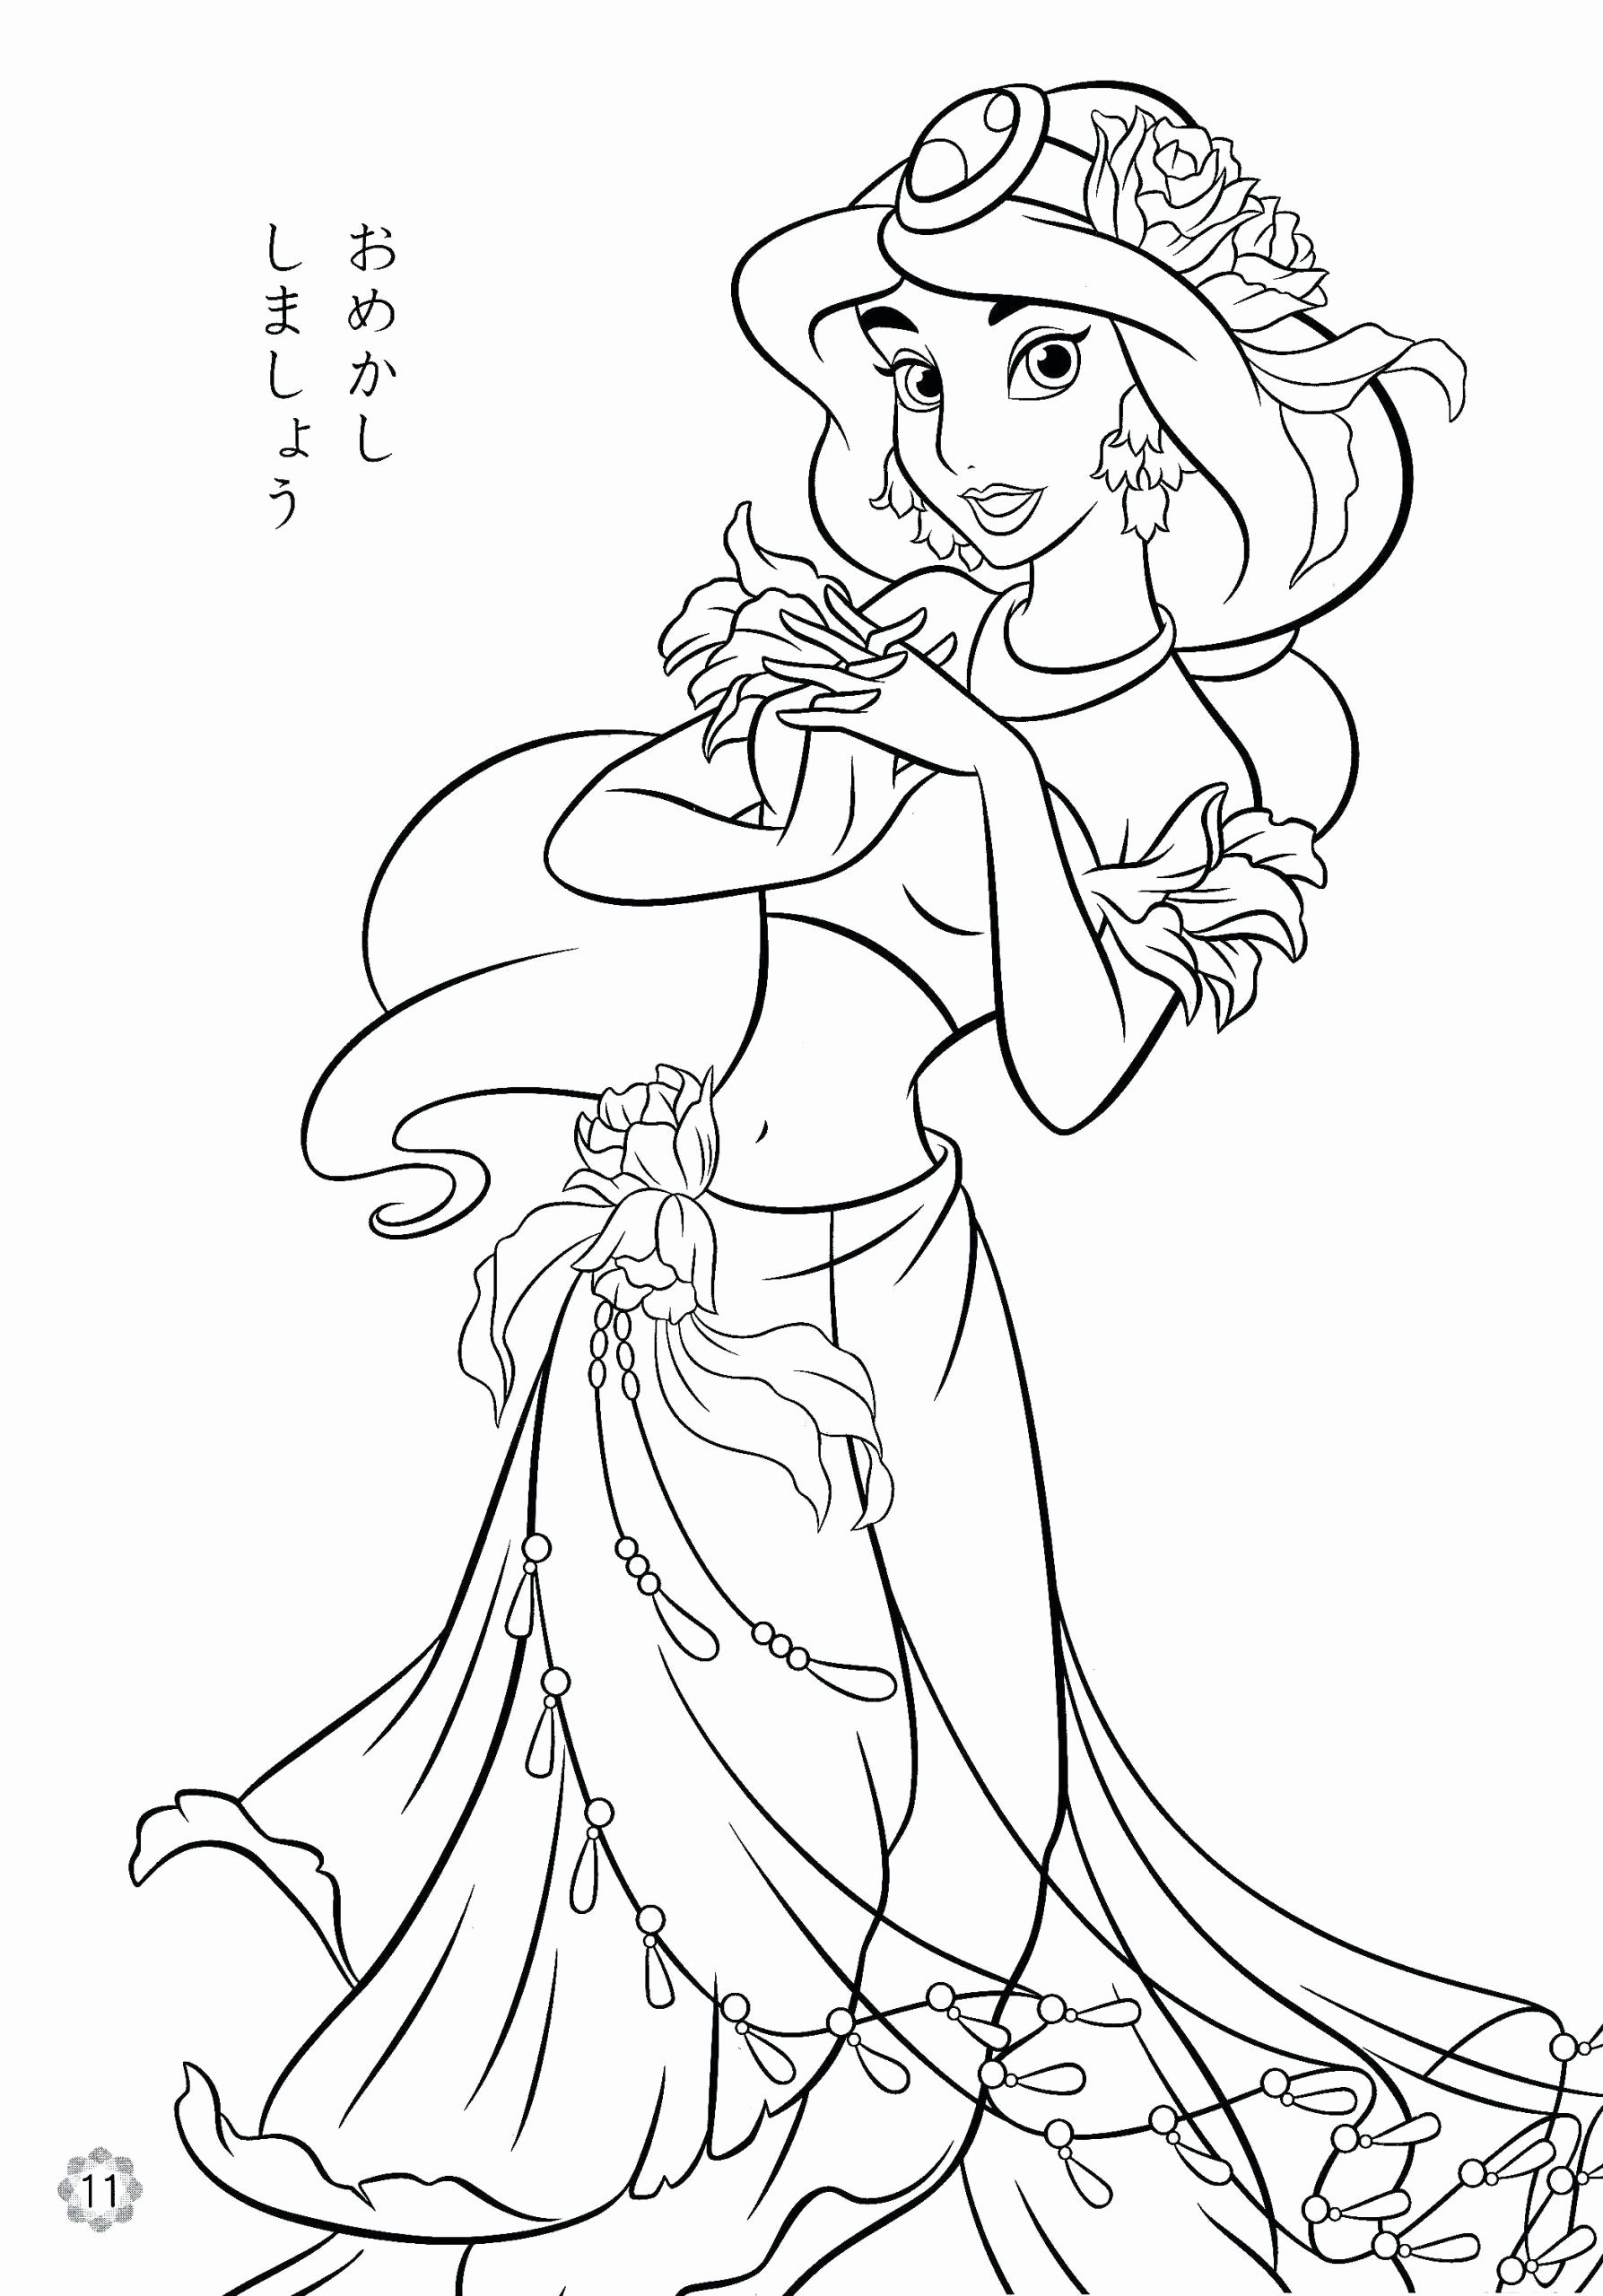 Coloring Pages For Girls Disney Princess Kids In 2020 Ariel Coloring Pages Disney Princess Coloring Pages Princess Coloring Pages